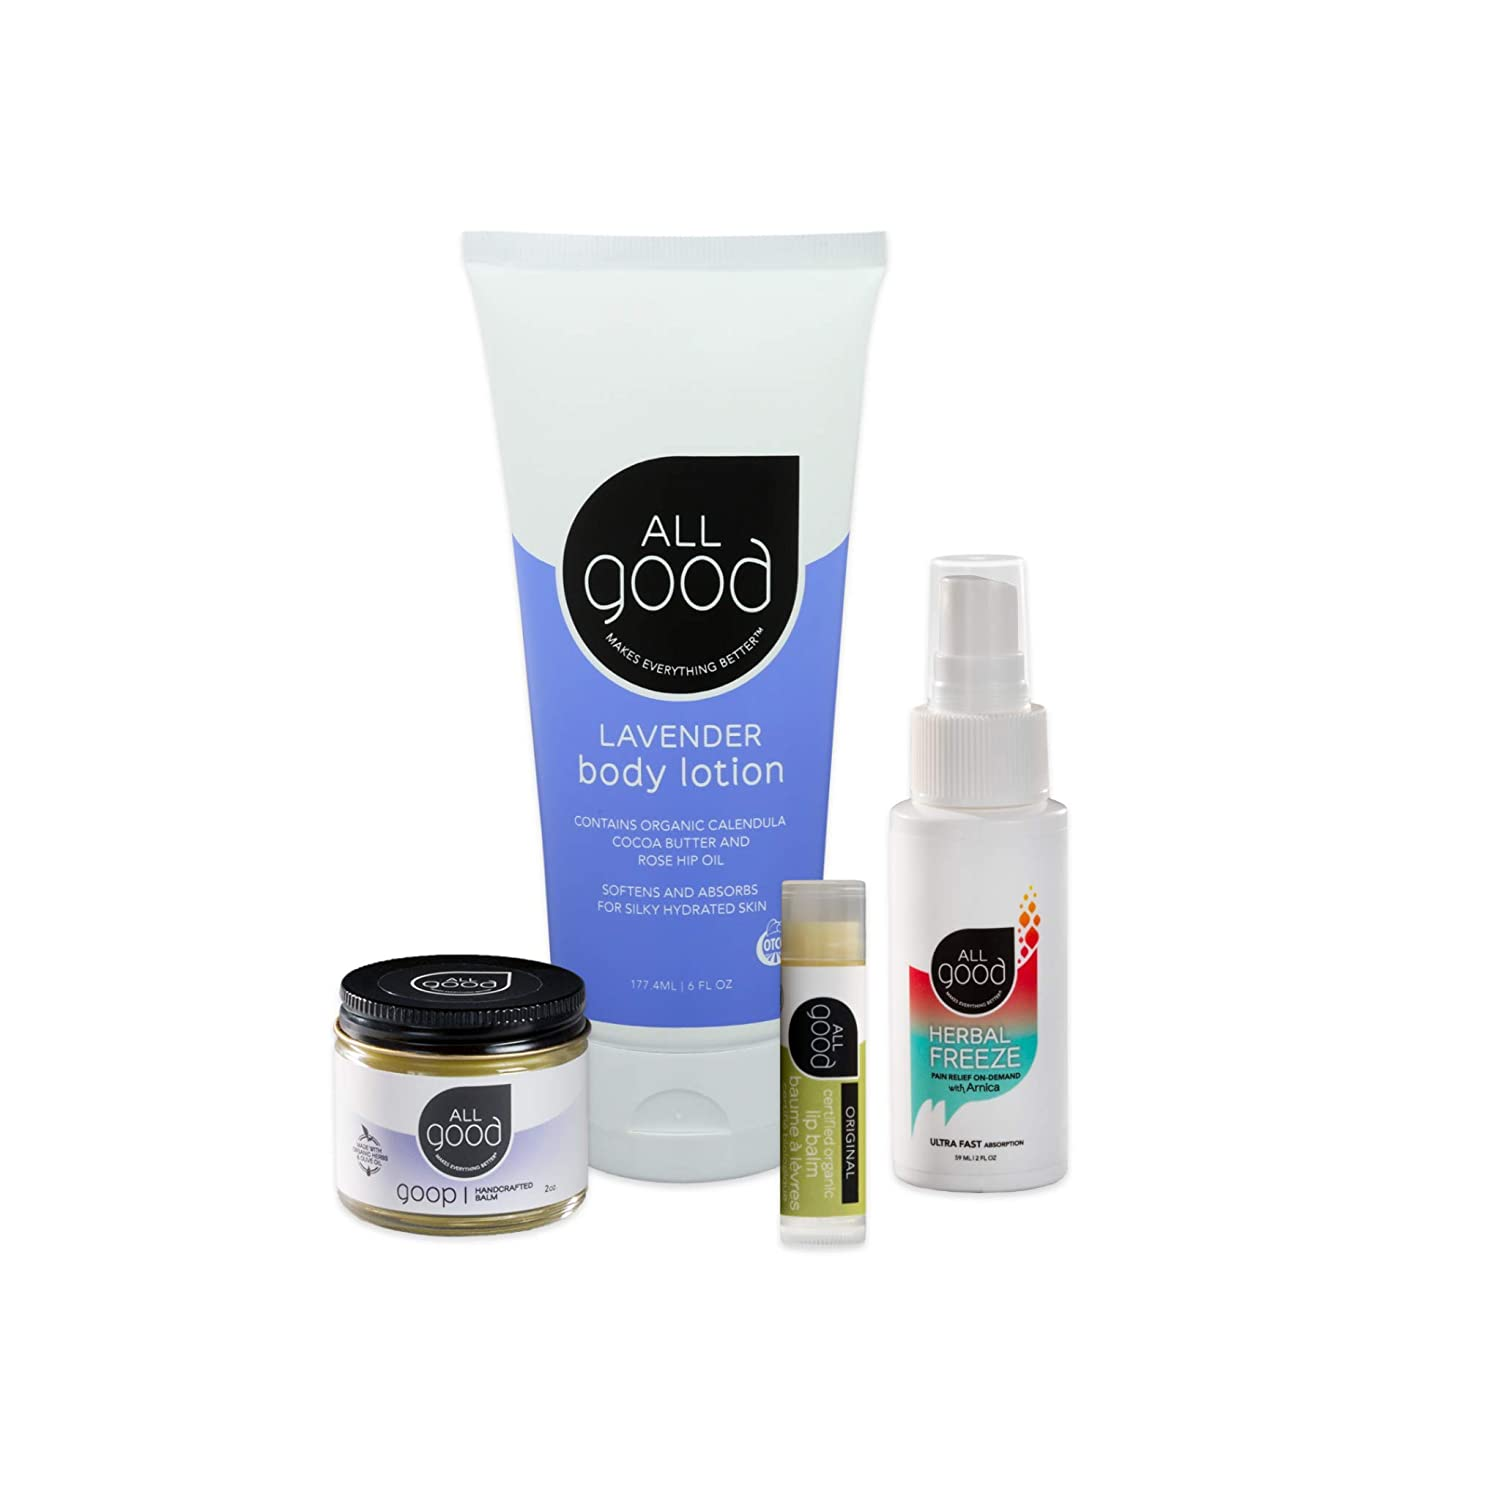 All Good Work From Home Support Gift Set - Goop, Lavender Lotion, Organic Original Lip Balm, Herbal Freeze